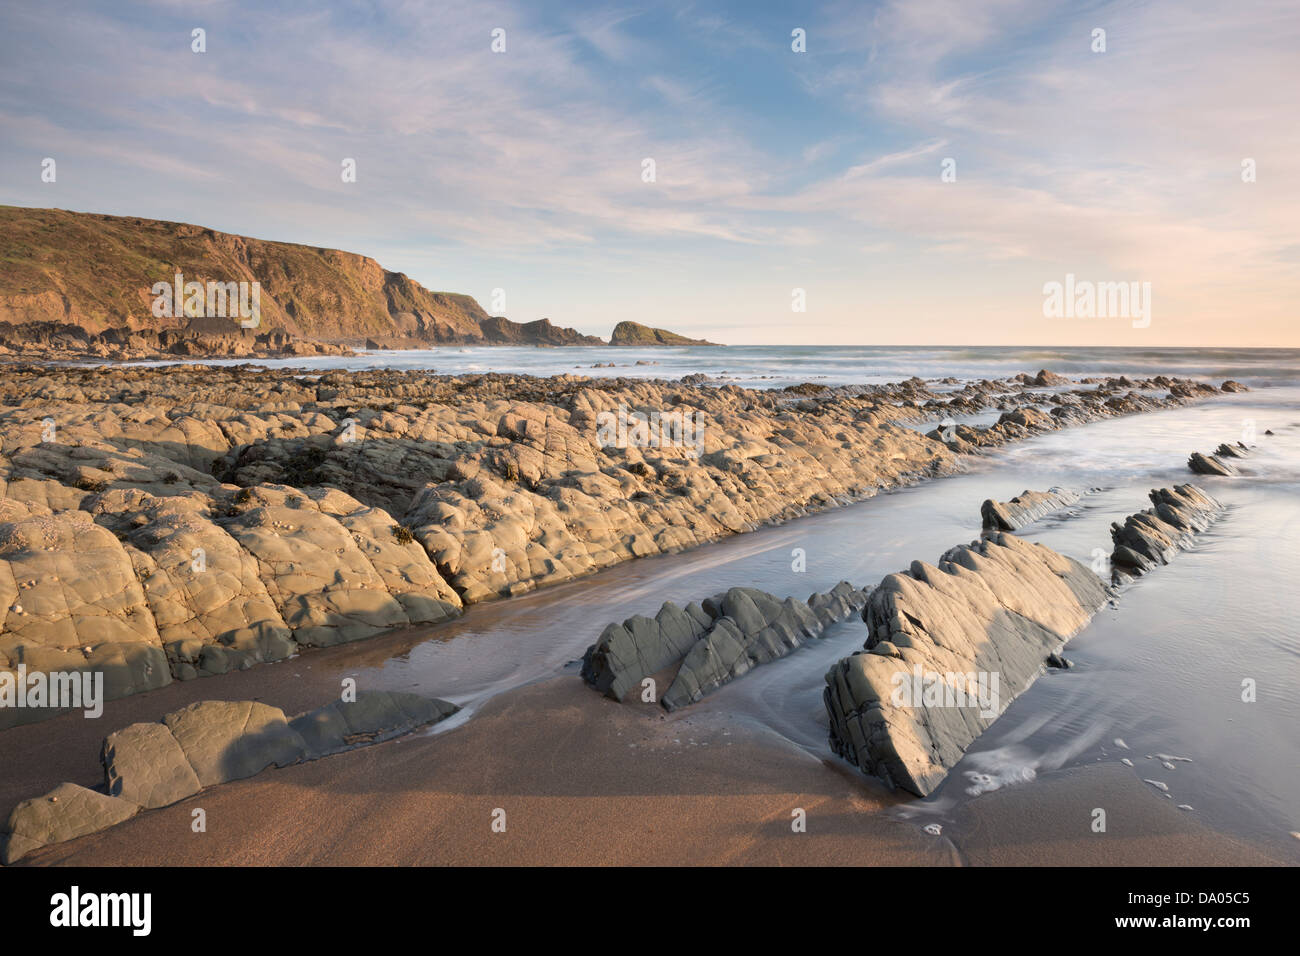 Evening light hits rocks on Welcombe Mouth Beach, North Devon, UK. Stock Photo